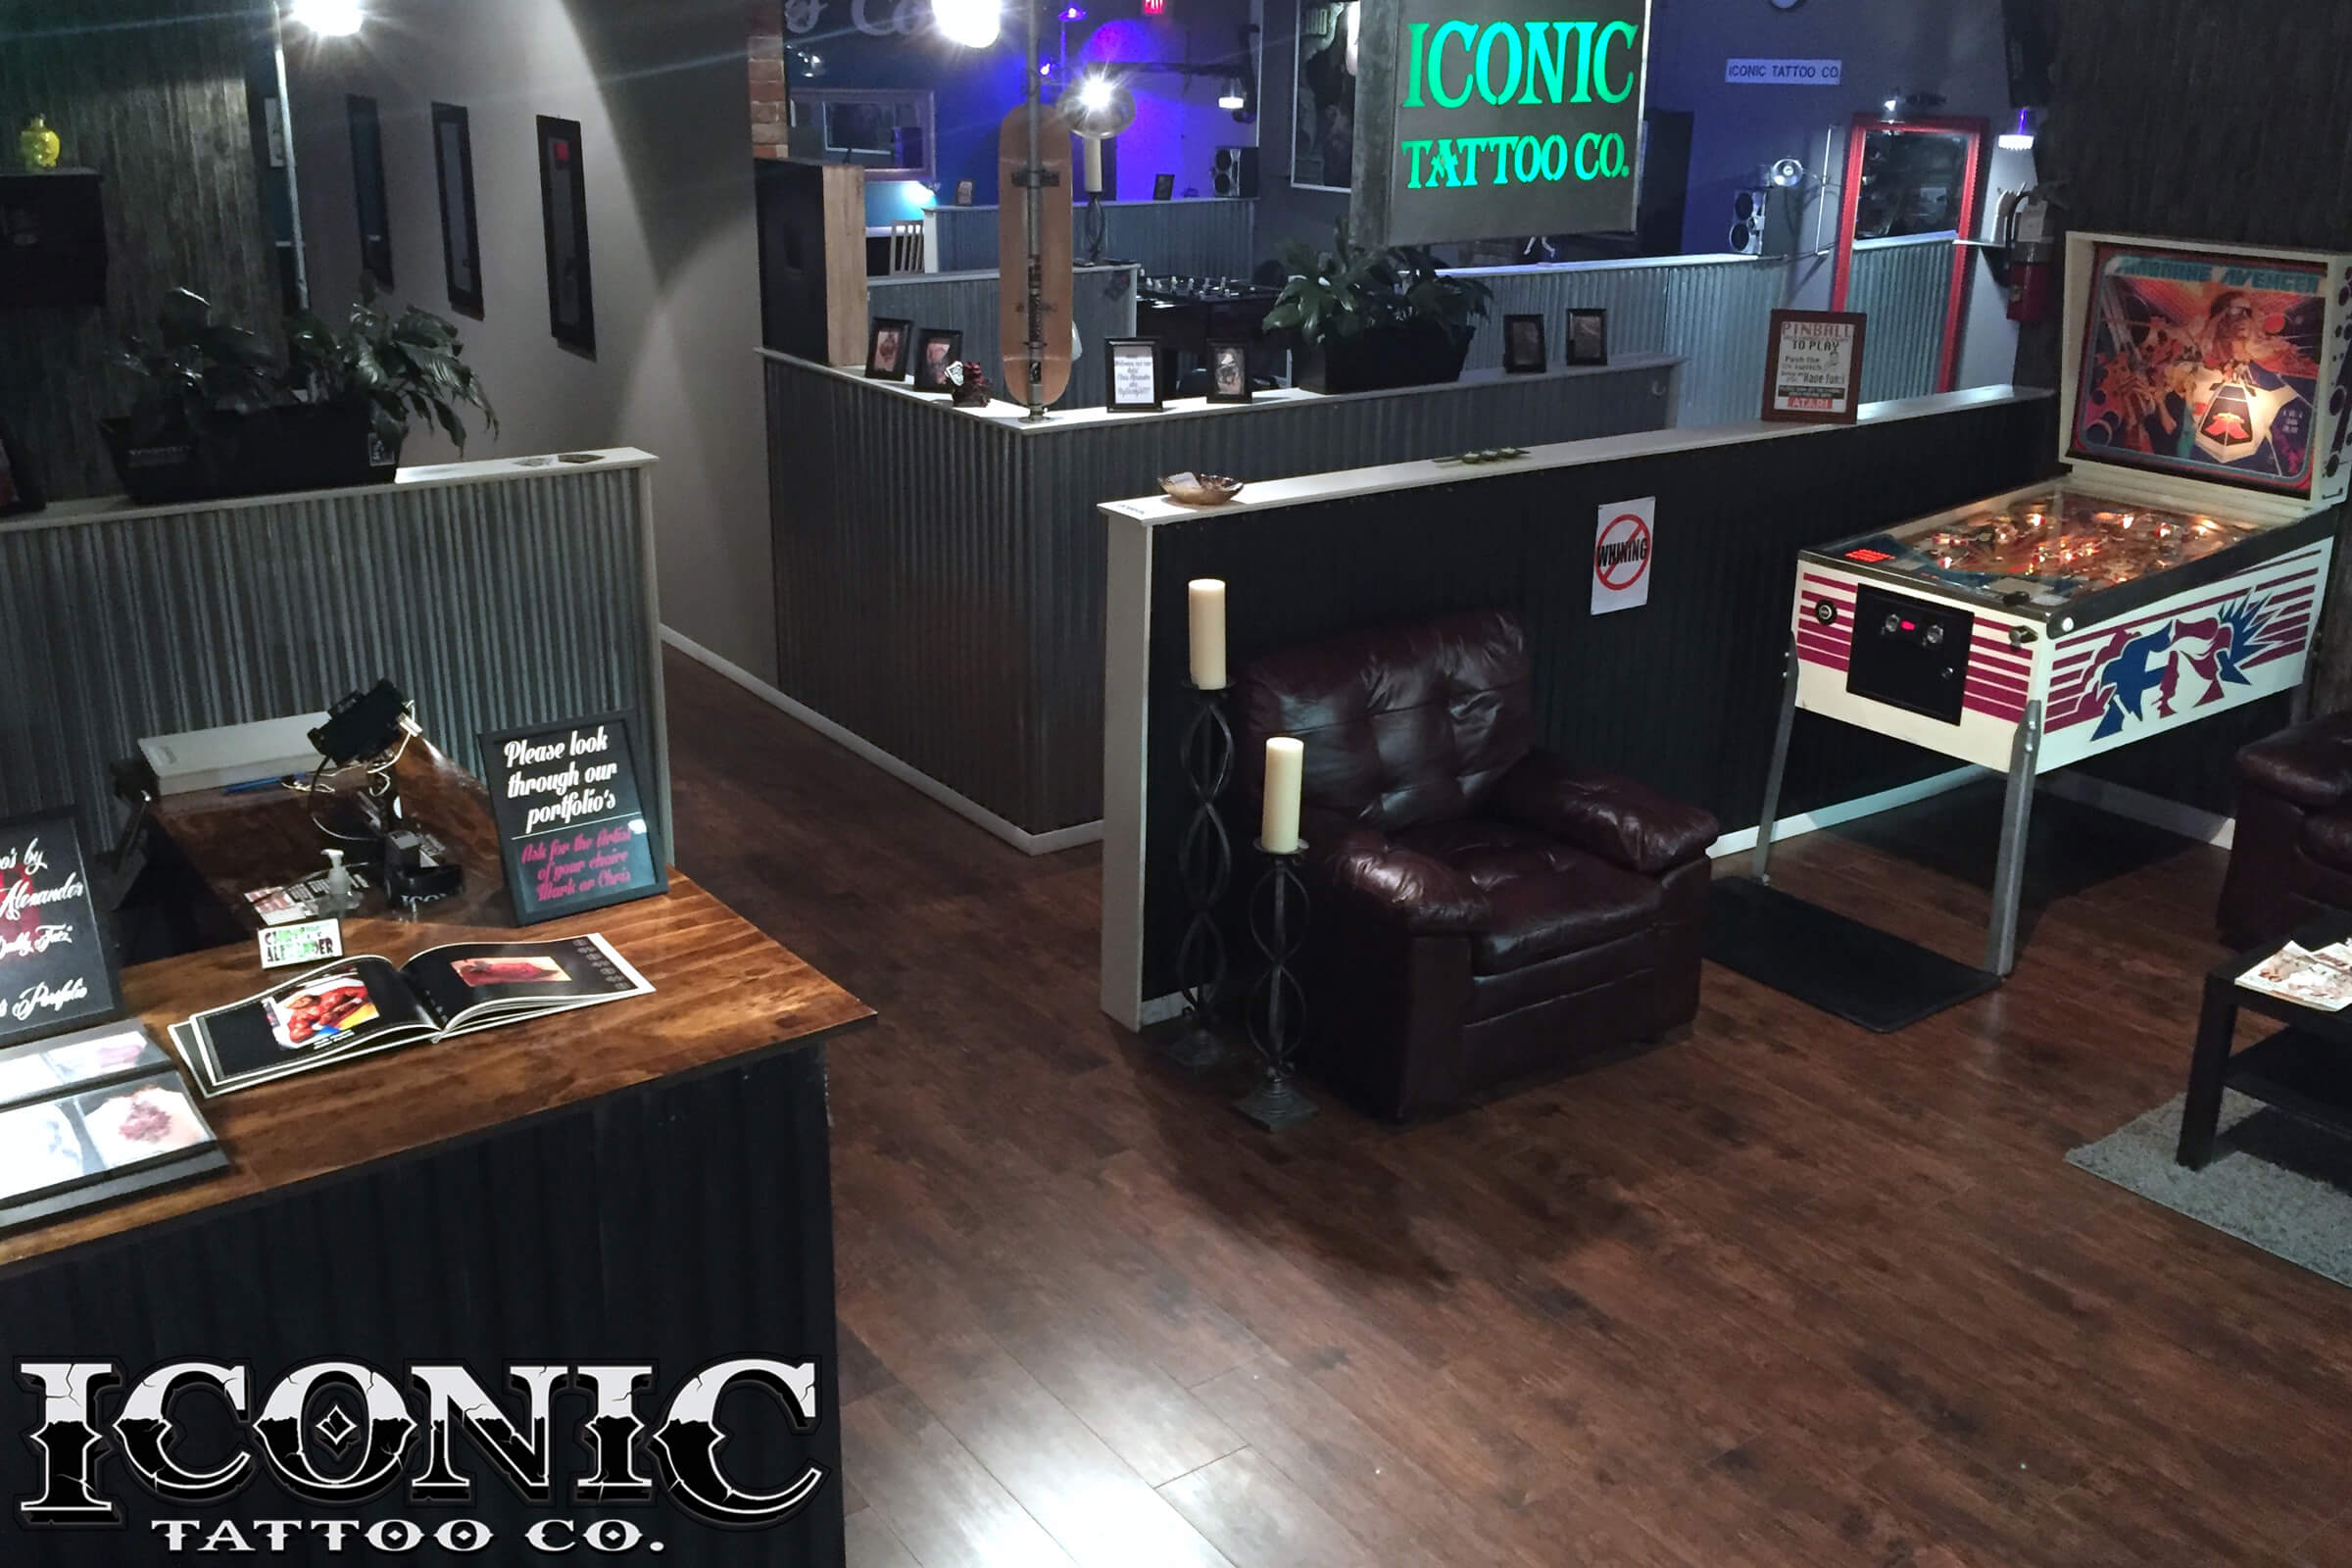 Iconic tattoo co for Tattoo shops in colorado springs